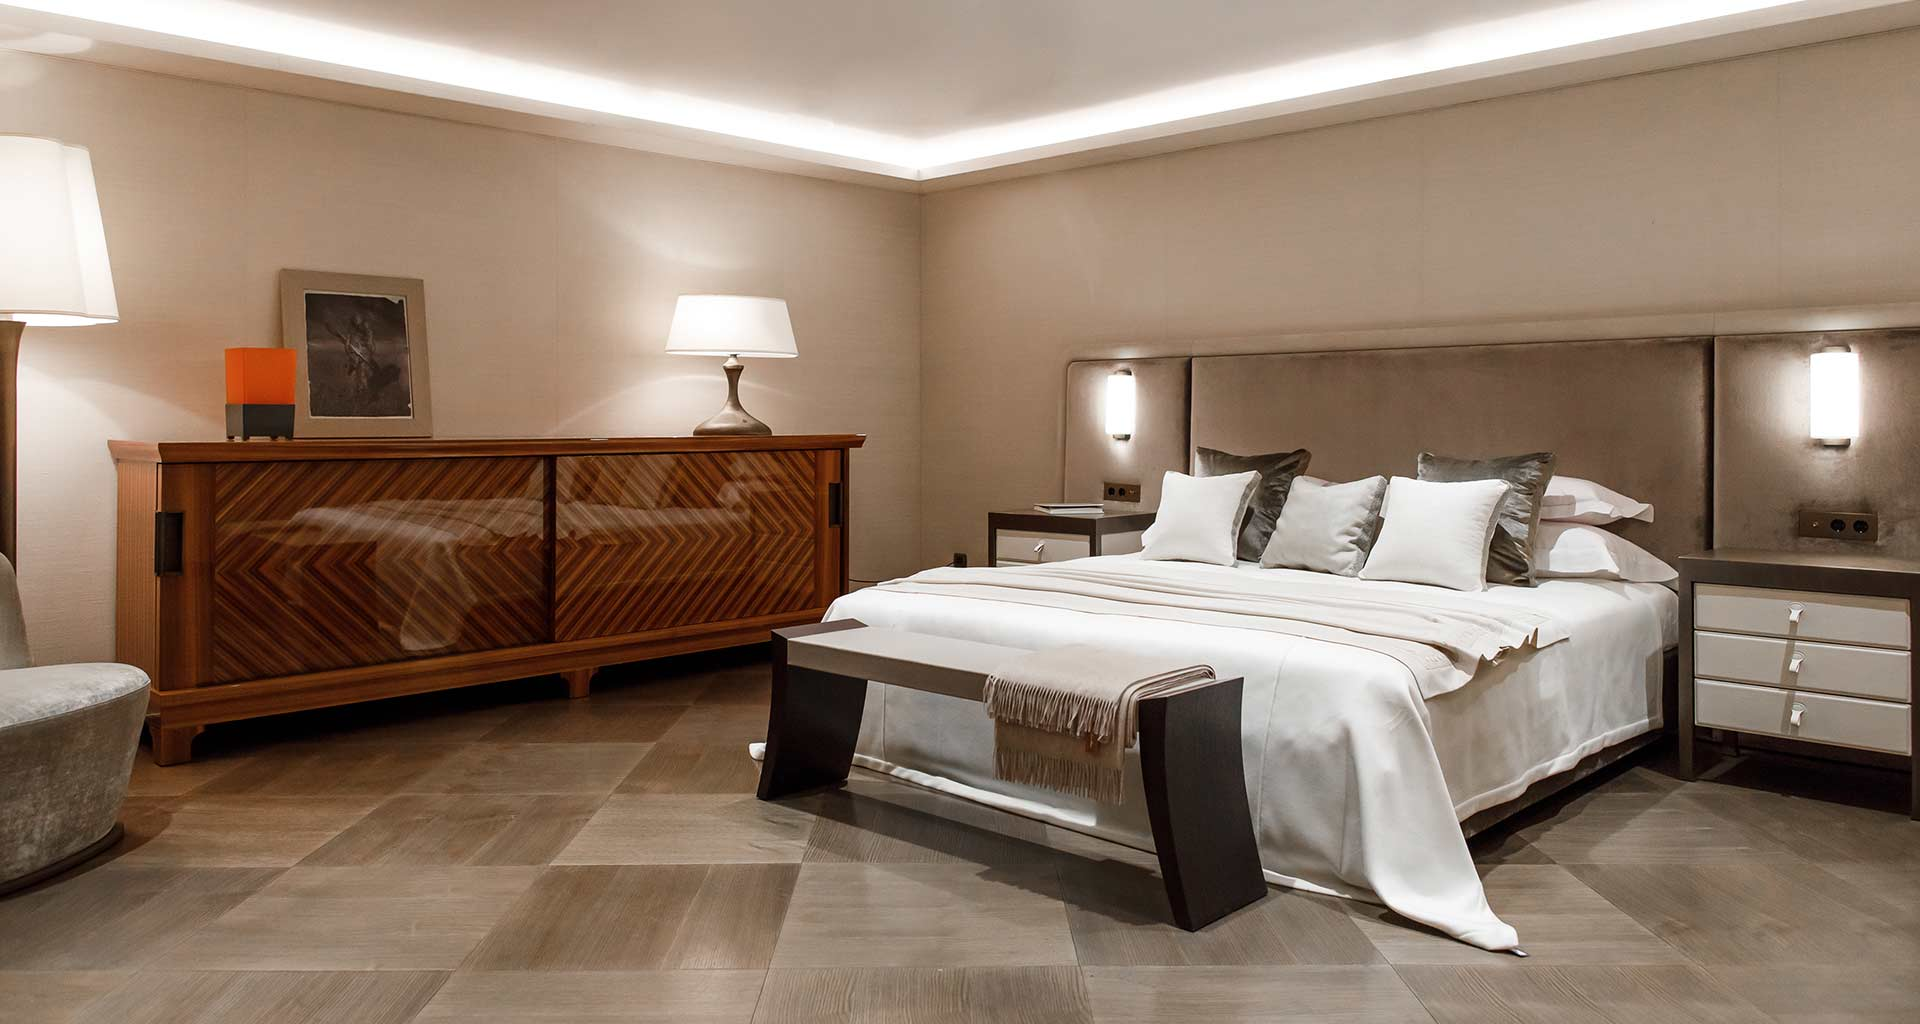 Bedroom in Promemoria's single-brand showroom in Moscow | Promemoria